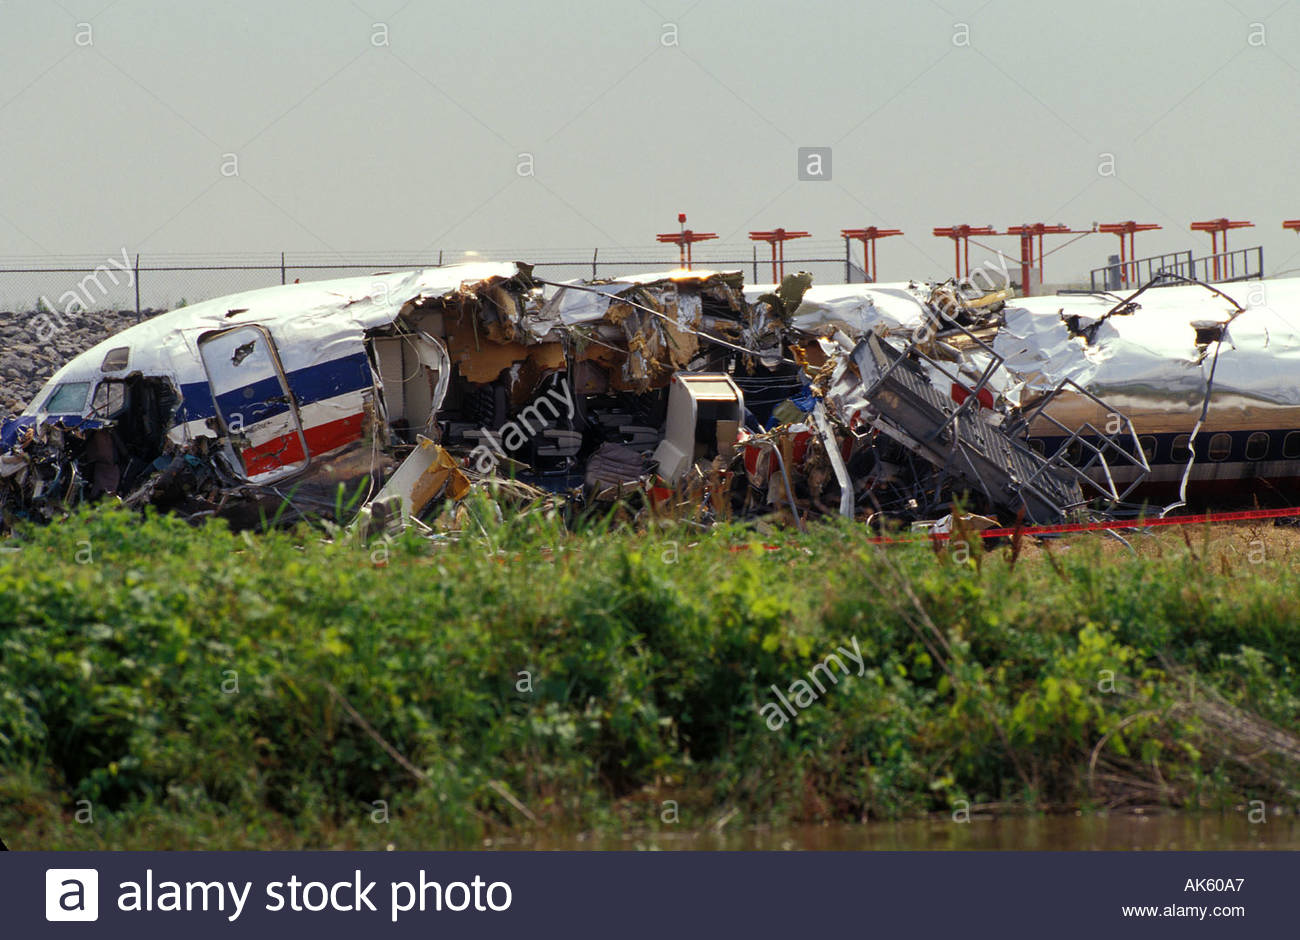 american airlines plane crash at the little rock arkansas